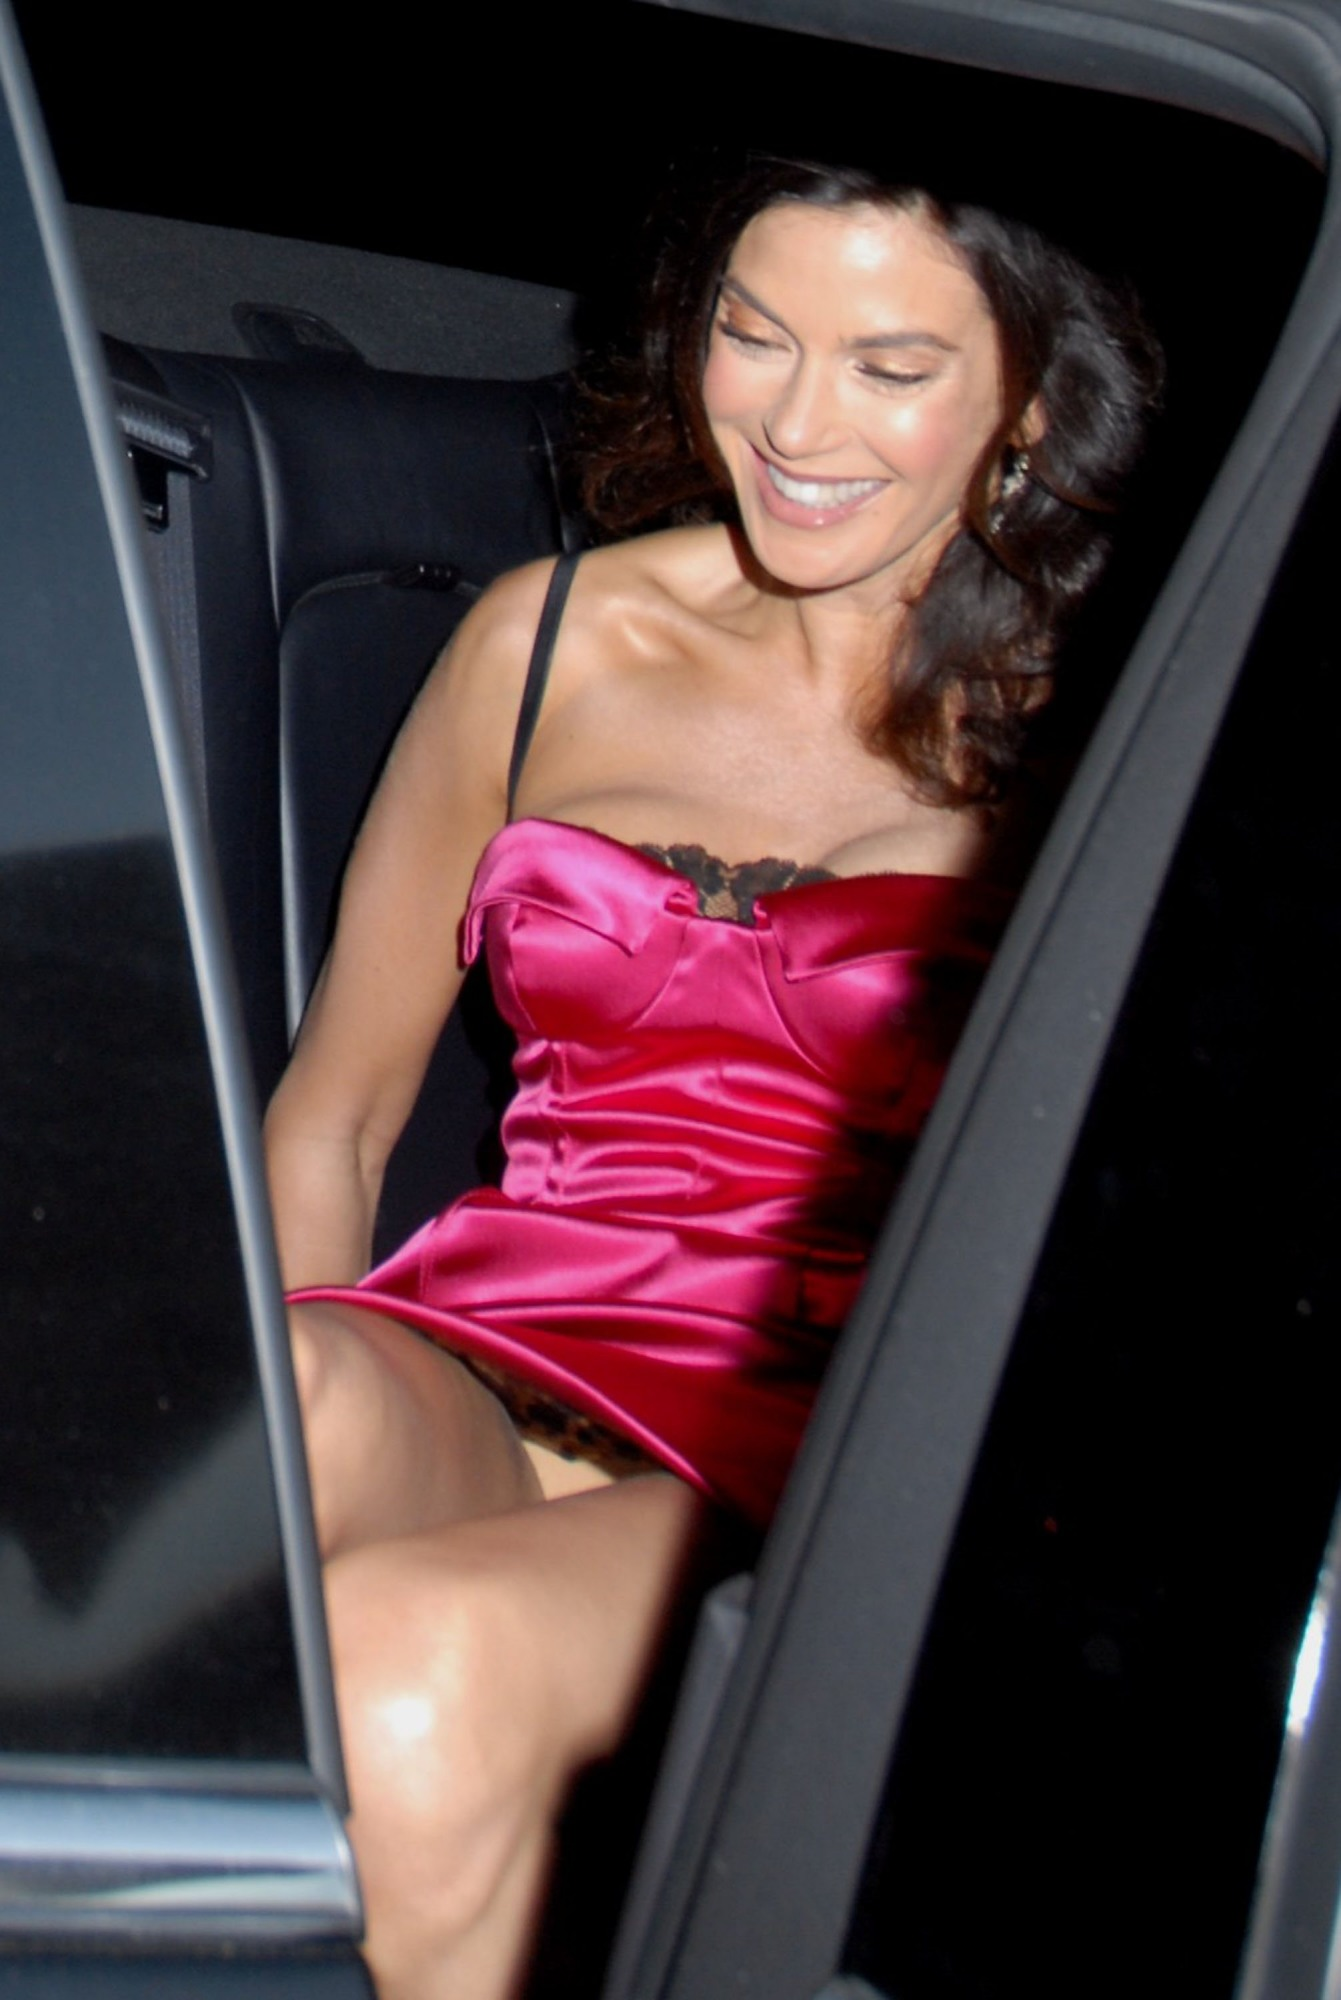 http://pictures.platinum-celebs.com/teri-hatcher-nude-photo.jpg